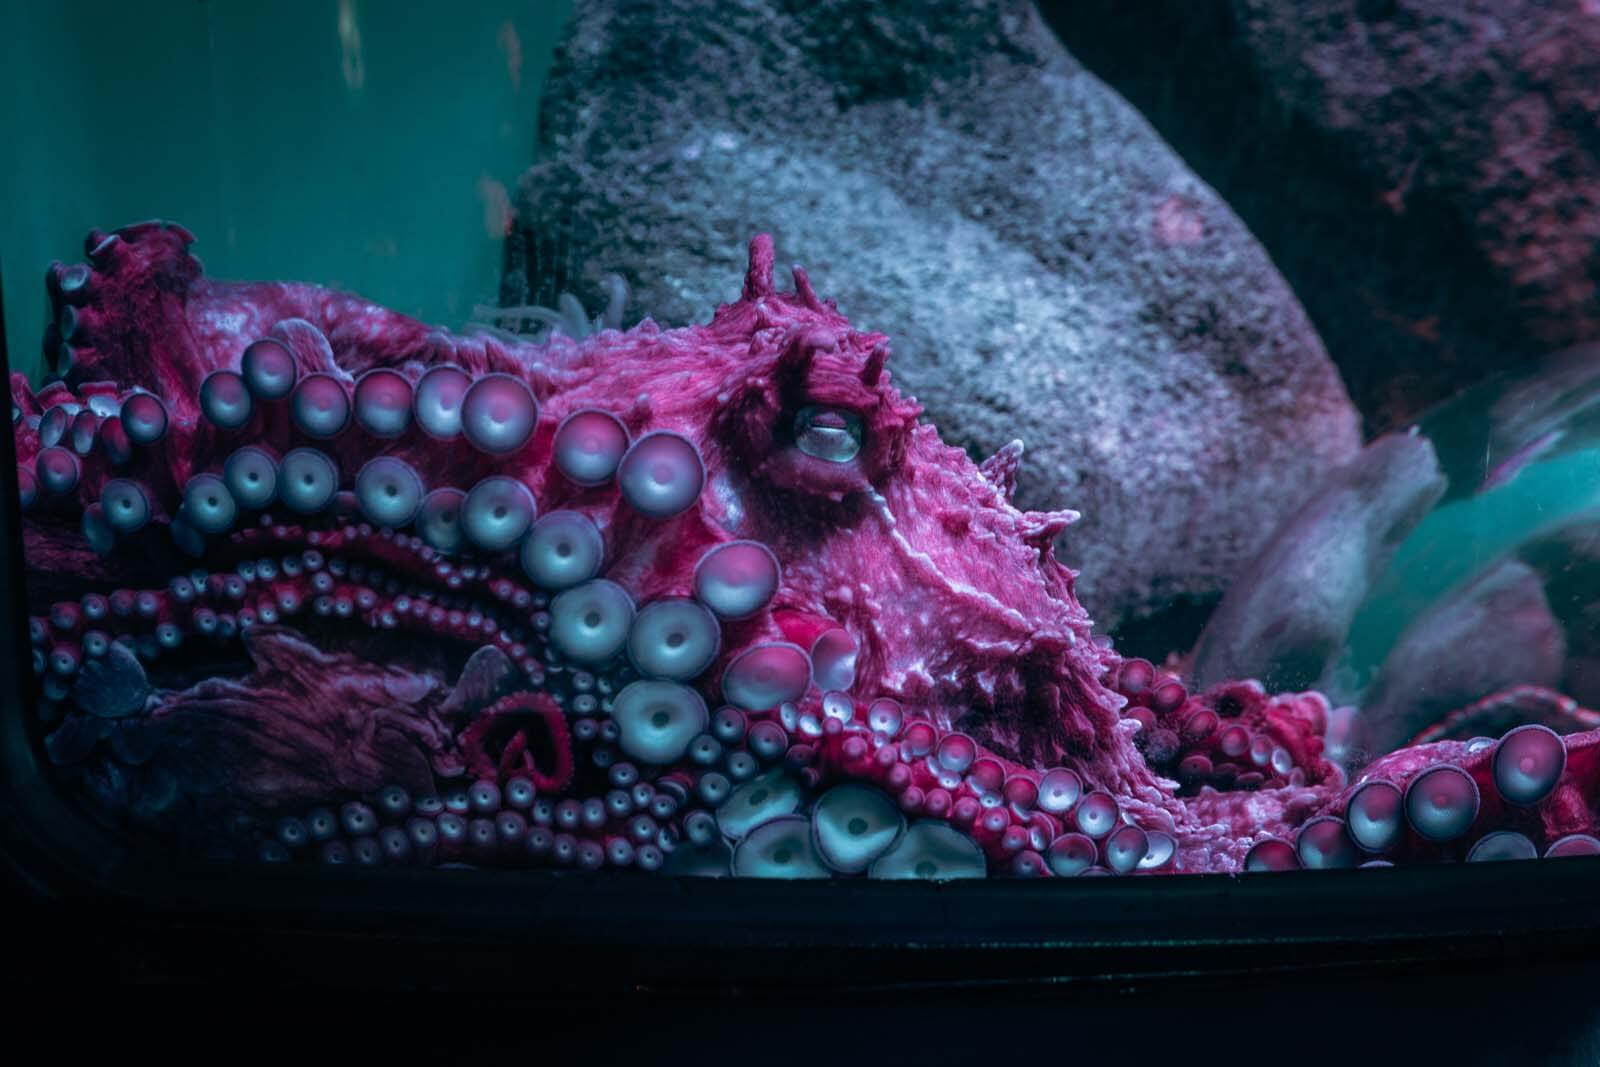 giant pacific octopus at the new york aquarium in brooklyn